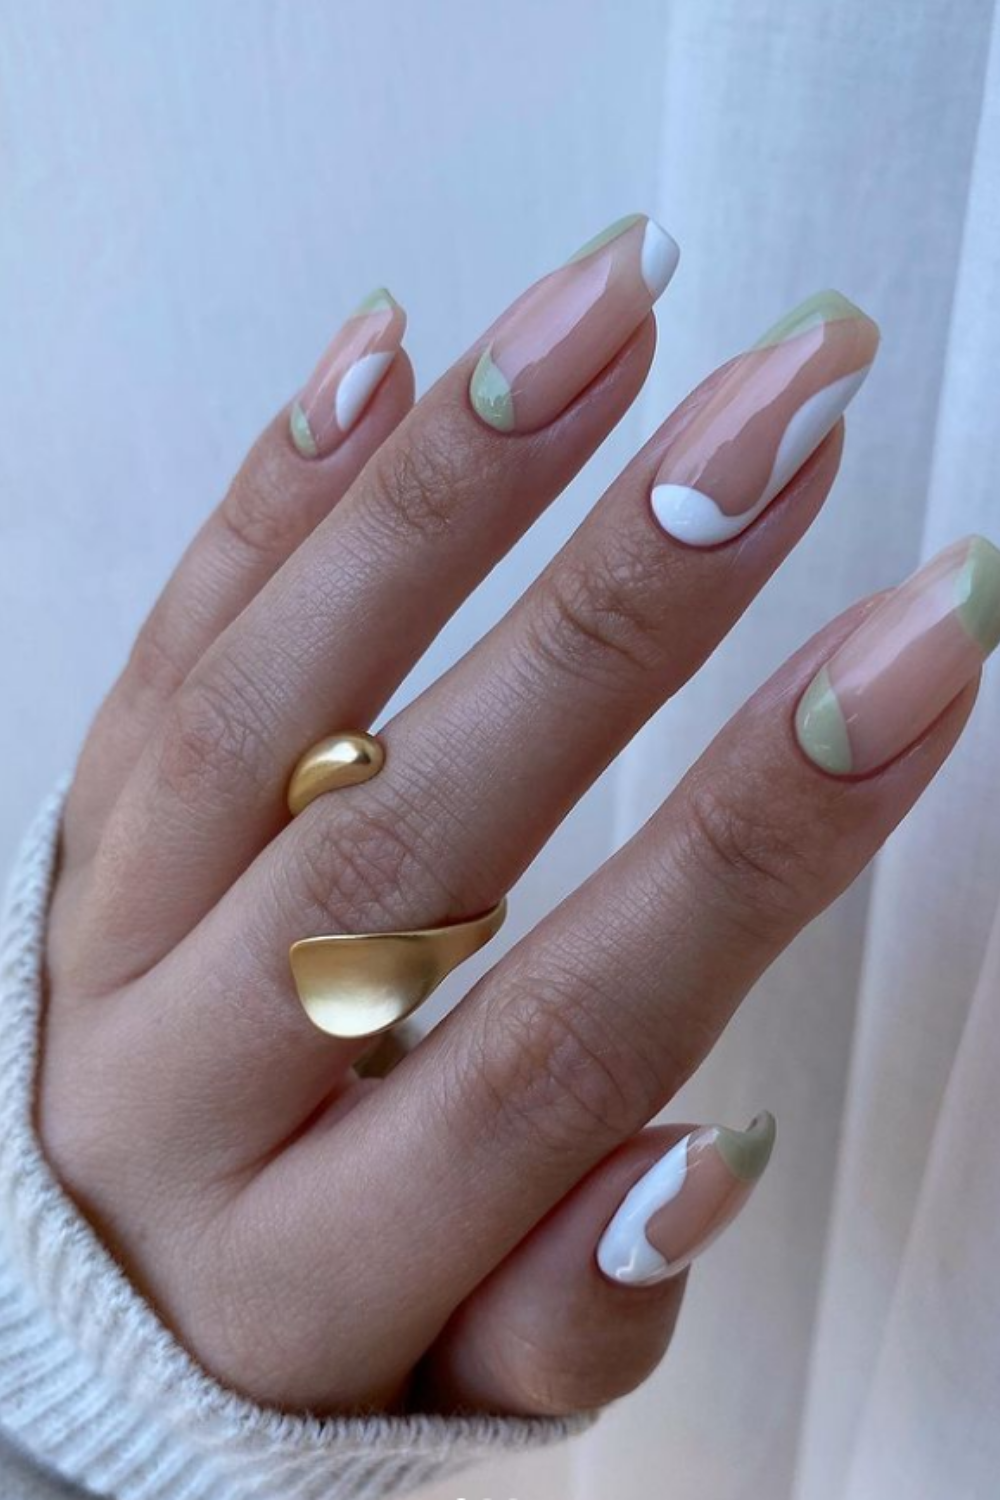 Neon green and white square nails